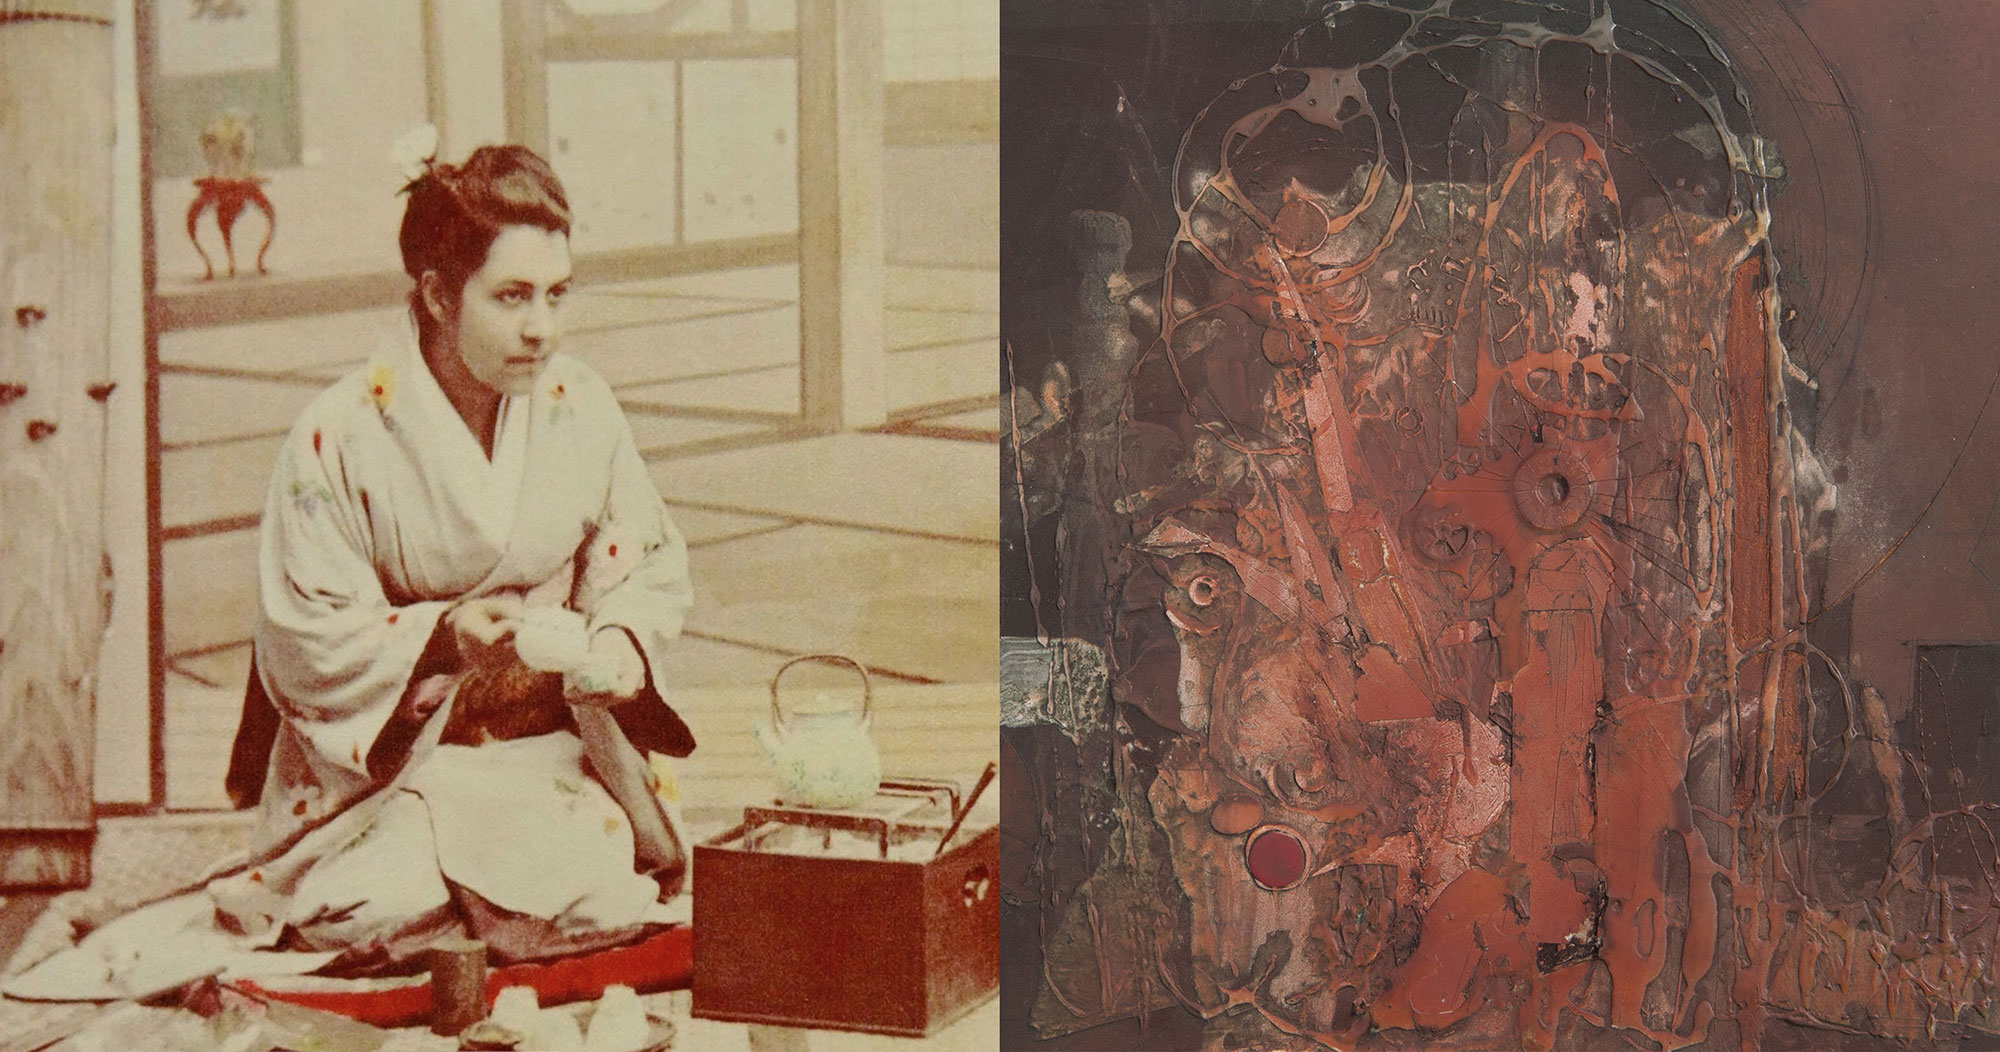 Diana Apcar in Japan in 1890. Berj Kailian, Untitled, mixed media on board, about 1970